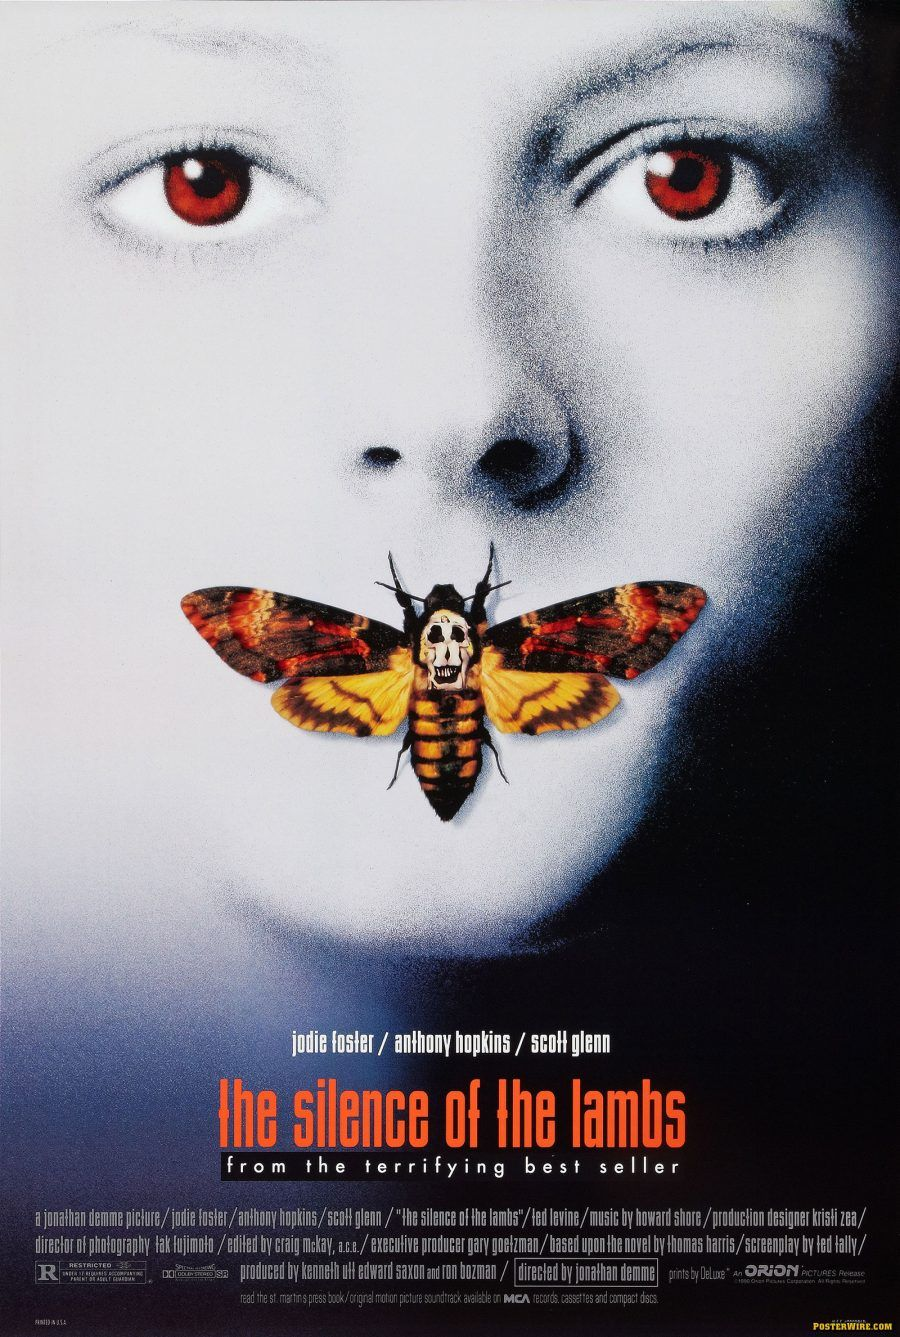 25 of the best movie posters from the 1990s iconic movie